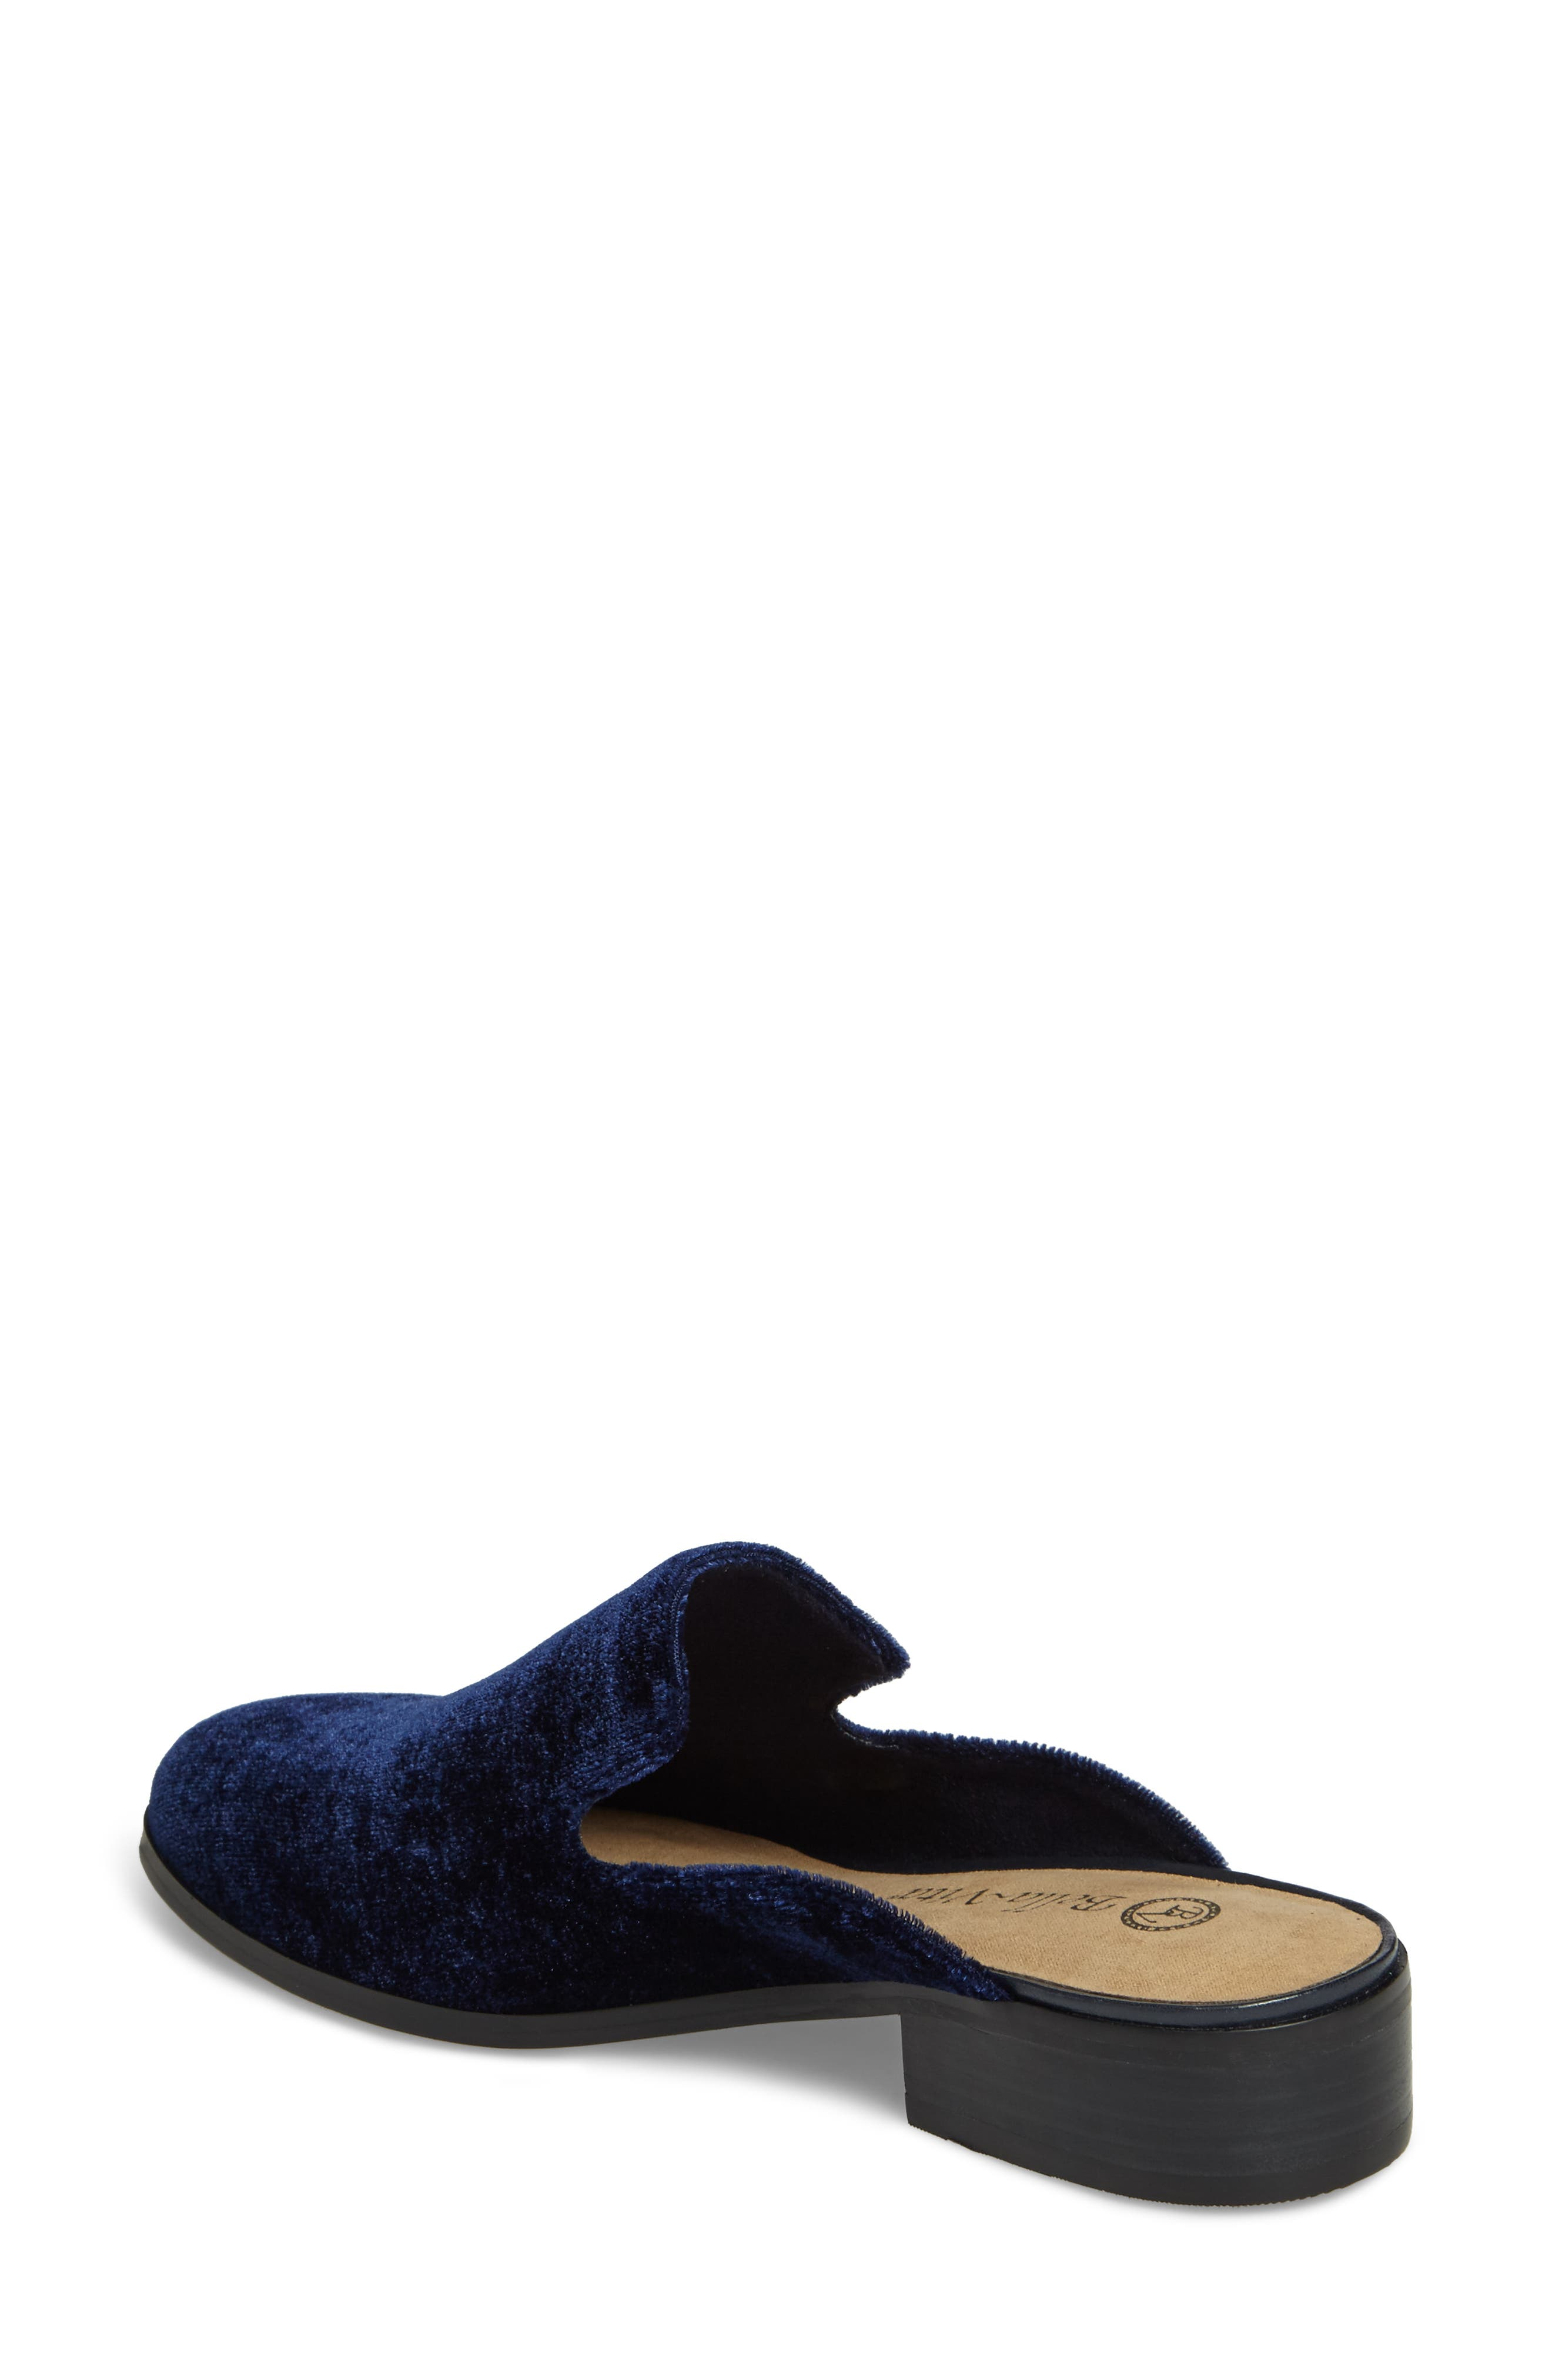 Briar II Loafer Mule,                             Alternate thumbnail 10, color,